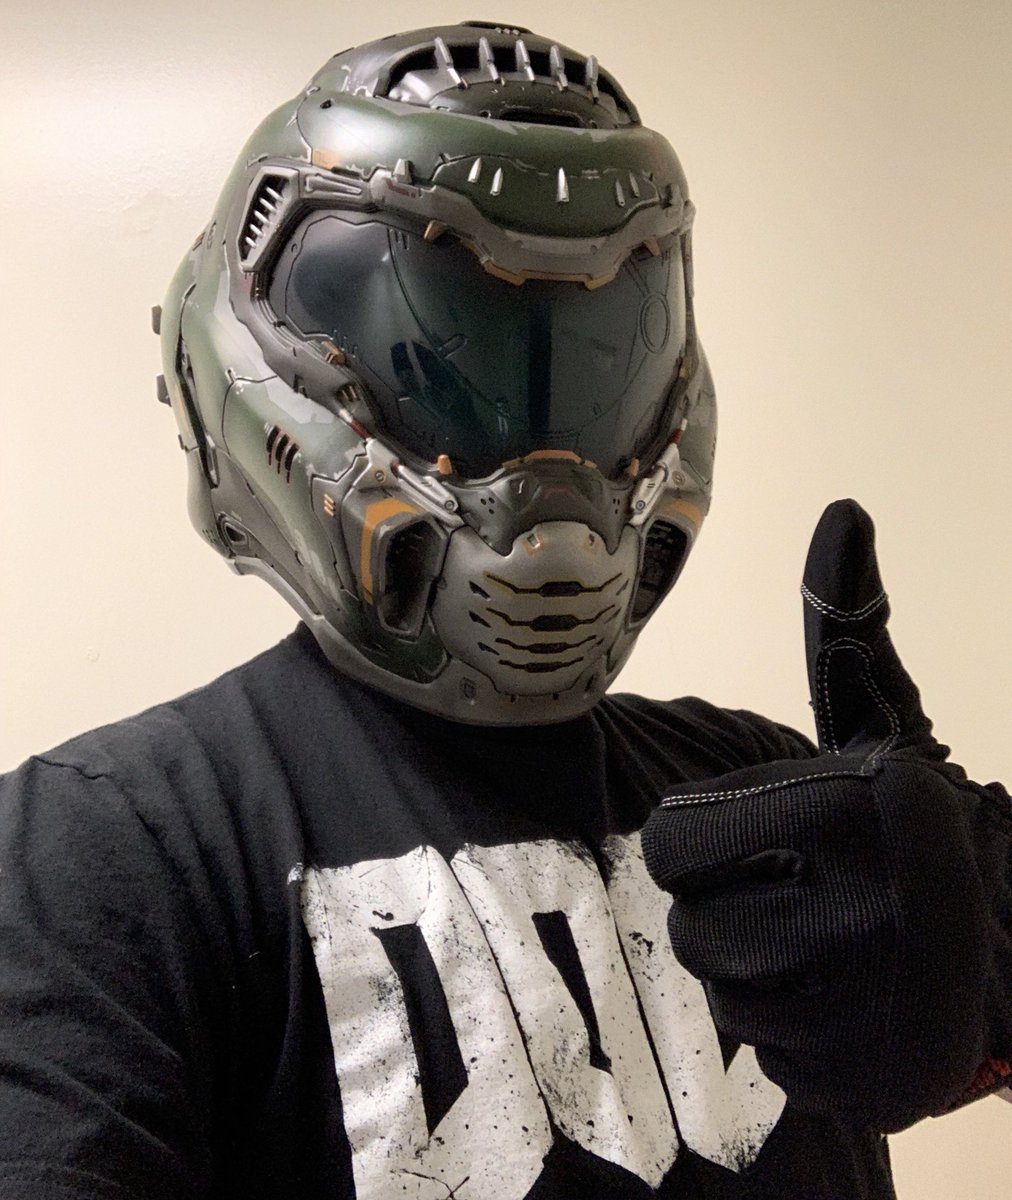 test ツイッターメディア - I FINALLY got the Doom Eternal Collector's Edition yesterday! It's the best CE I've ever gotten. The helmet is the coolest thing ever! I love it so much! My childhood is thrilled!@idSoftware @DOOM @bethesda Thank you for making the best CE & game ever! It's a dream come true! https://t.co/1fQBM9XGsj